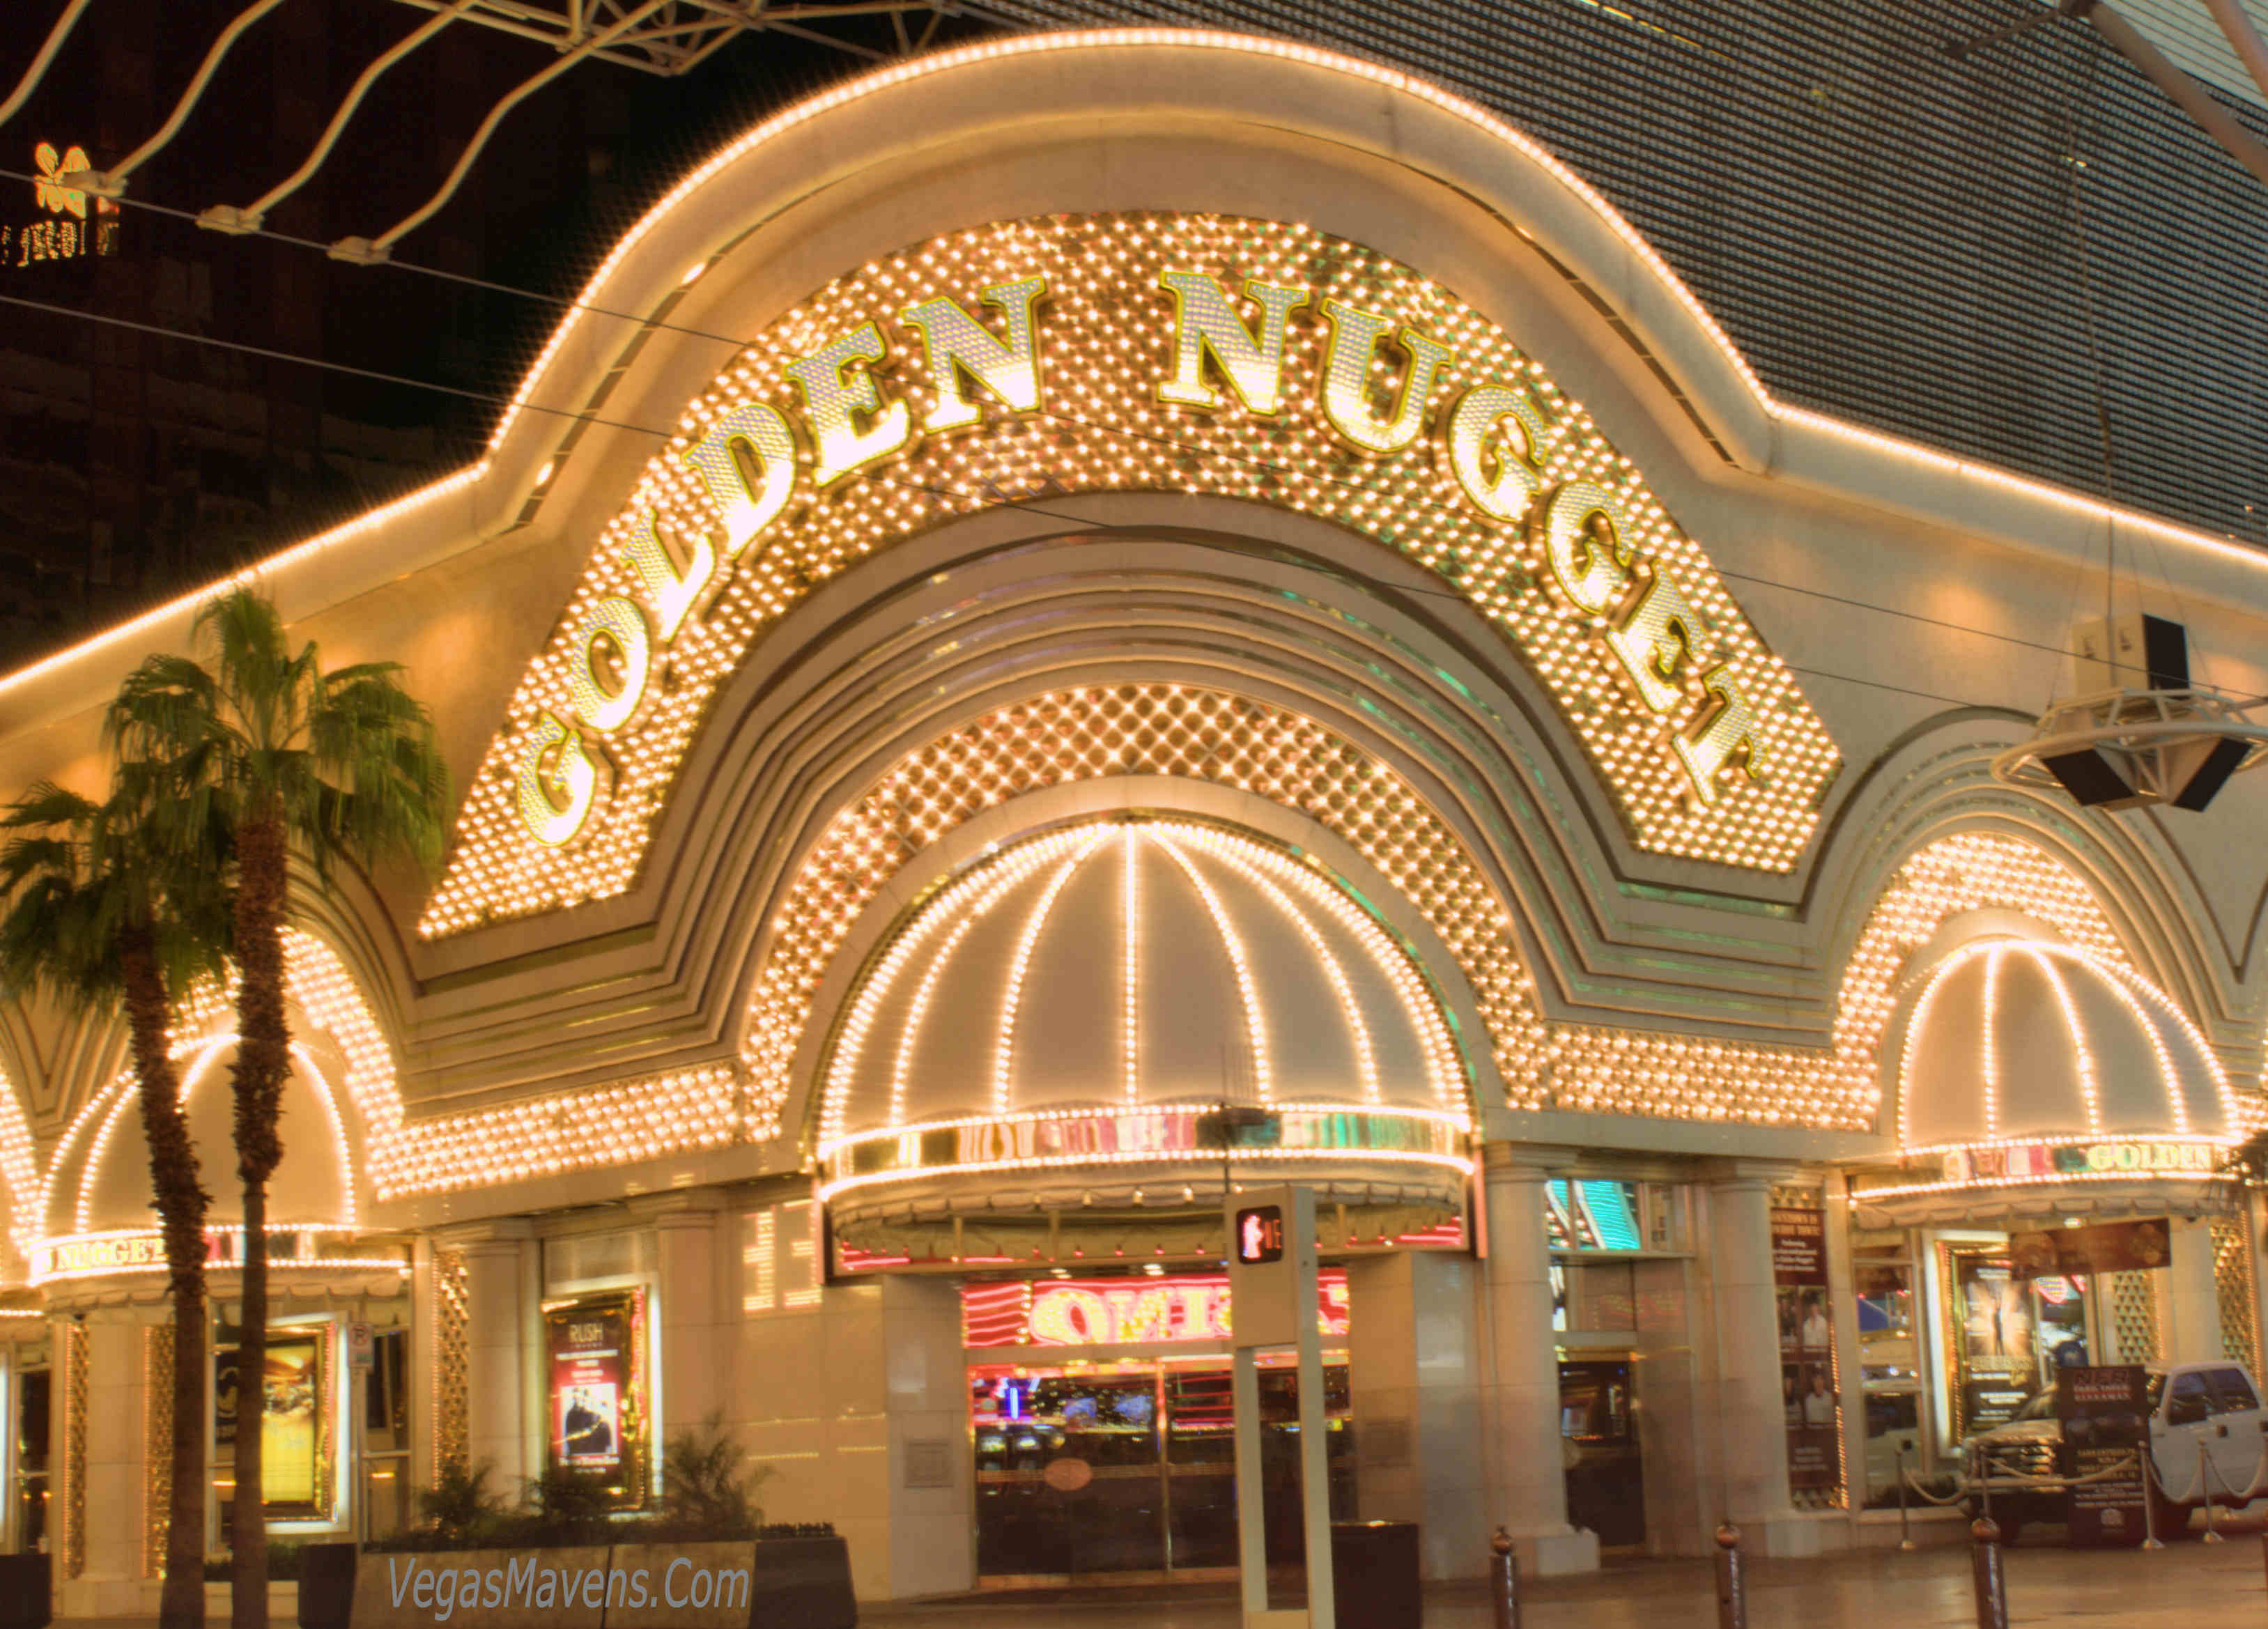 Casino golden nugget las vegas oceans 11 casino poker room